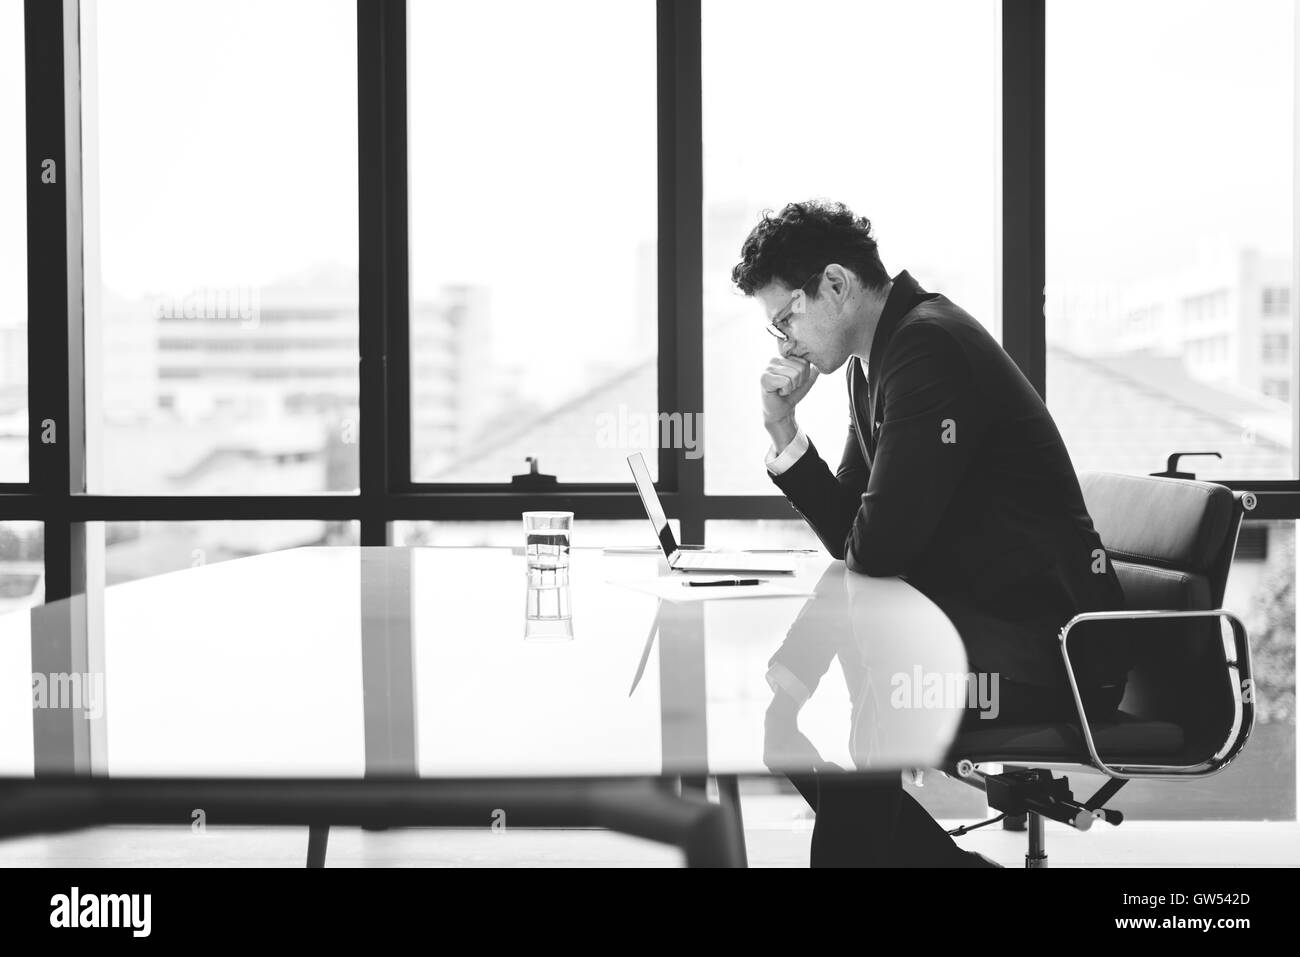 Stressful Stress Serious Working Entrepreneur Concept - Stock Image